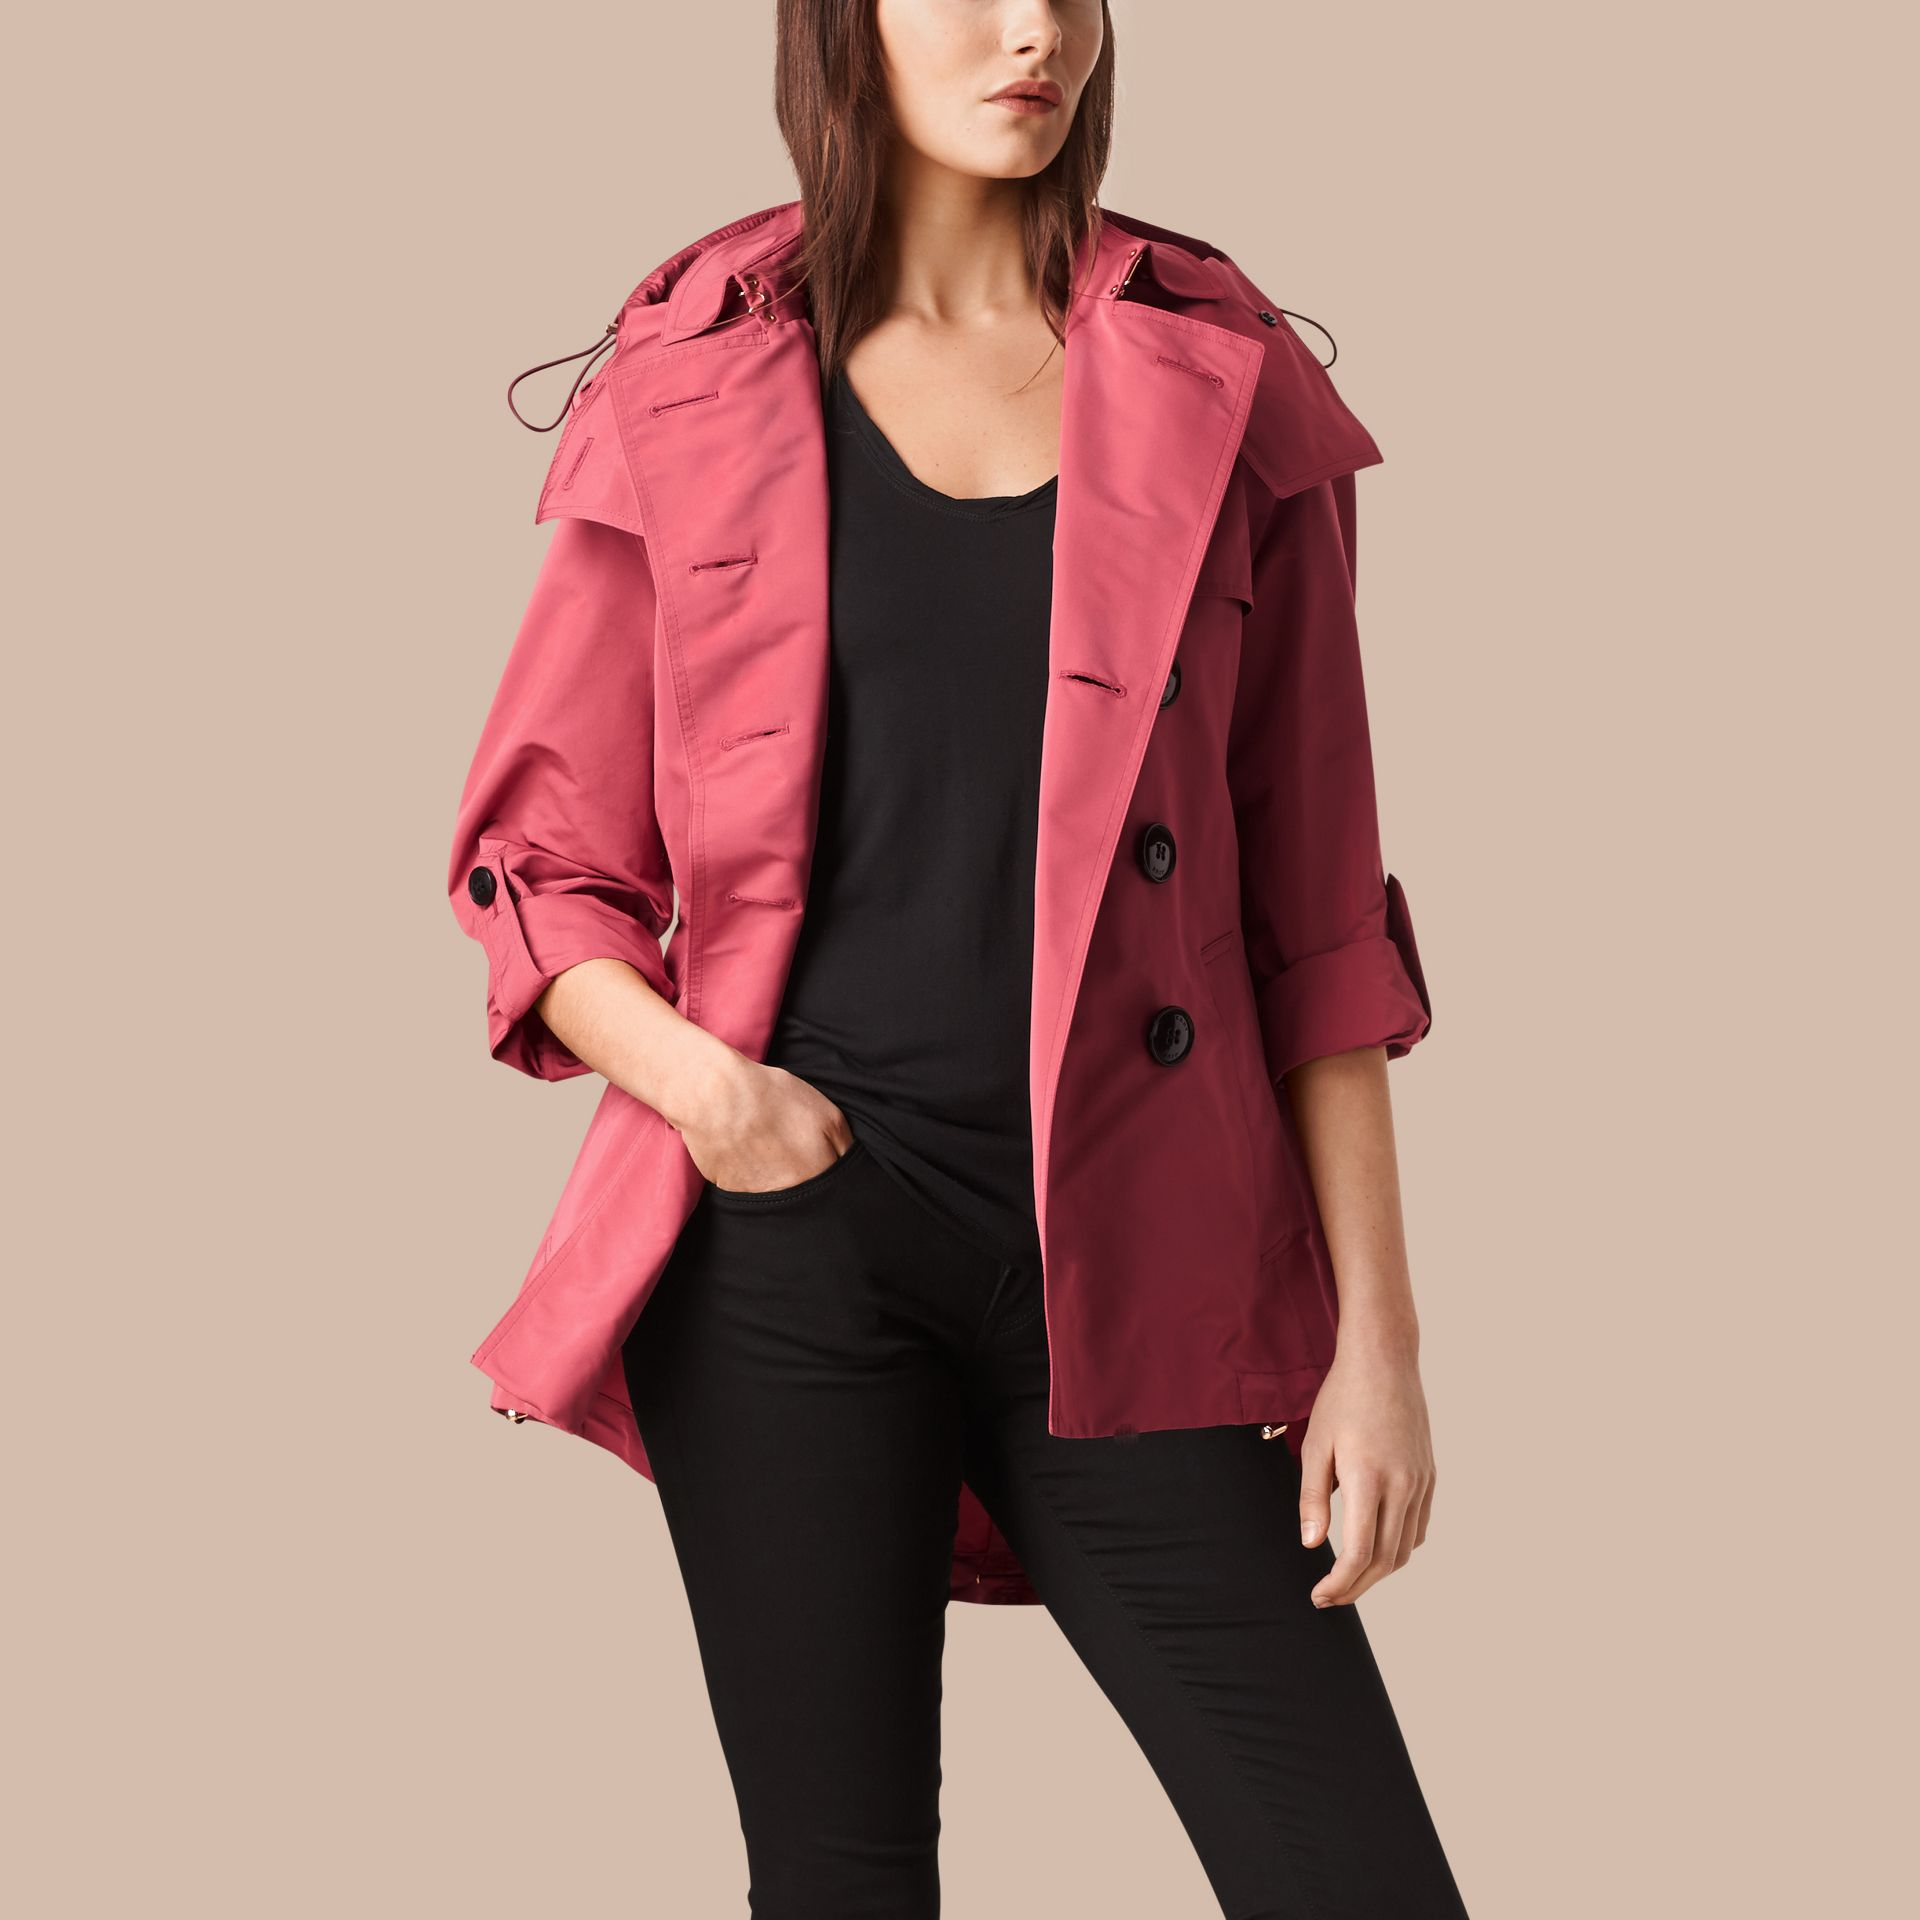 Bright copper pink Showerproof Trench Coat with Detachable Hood Bright Copper Pink - gallery image 1